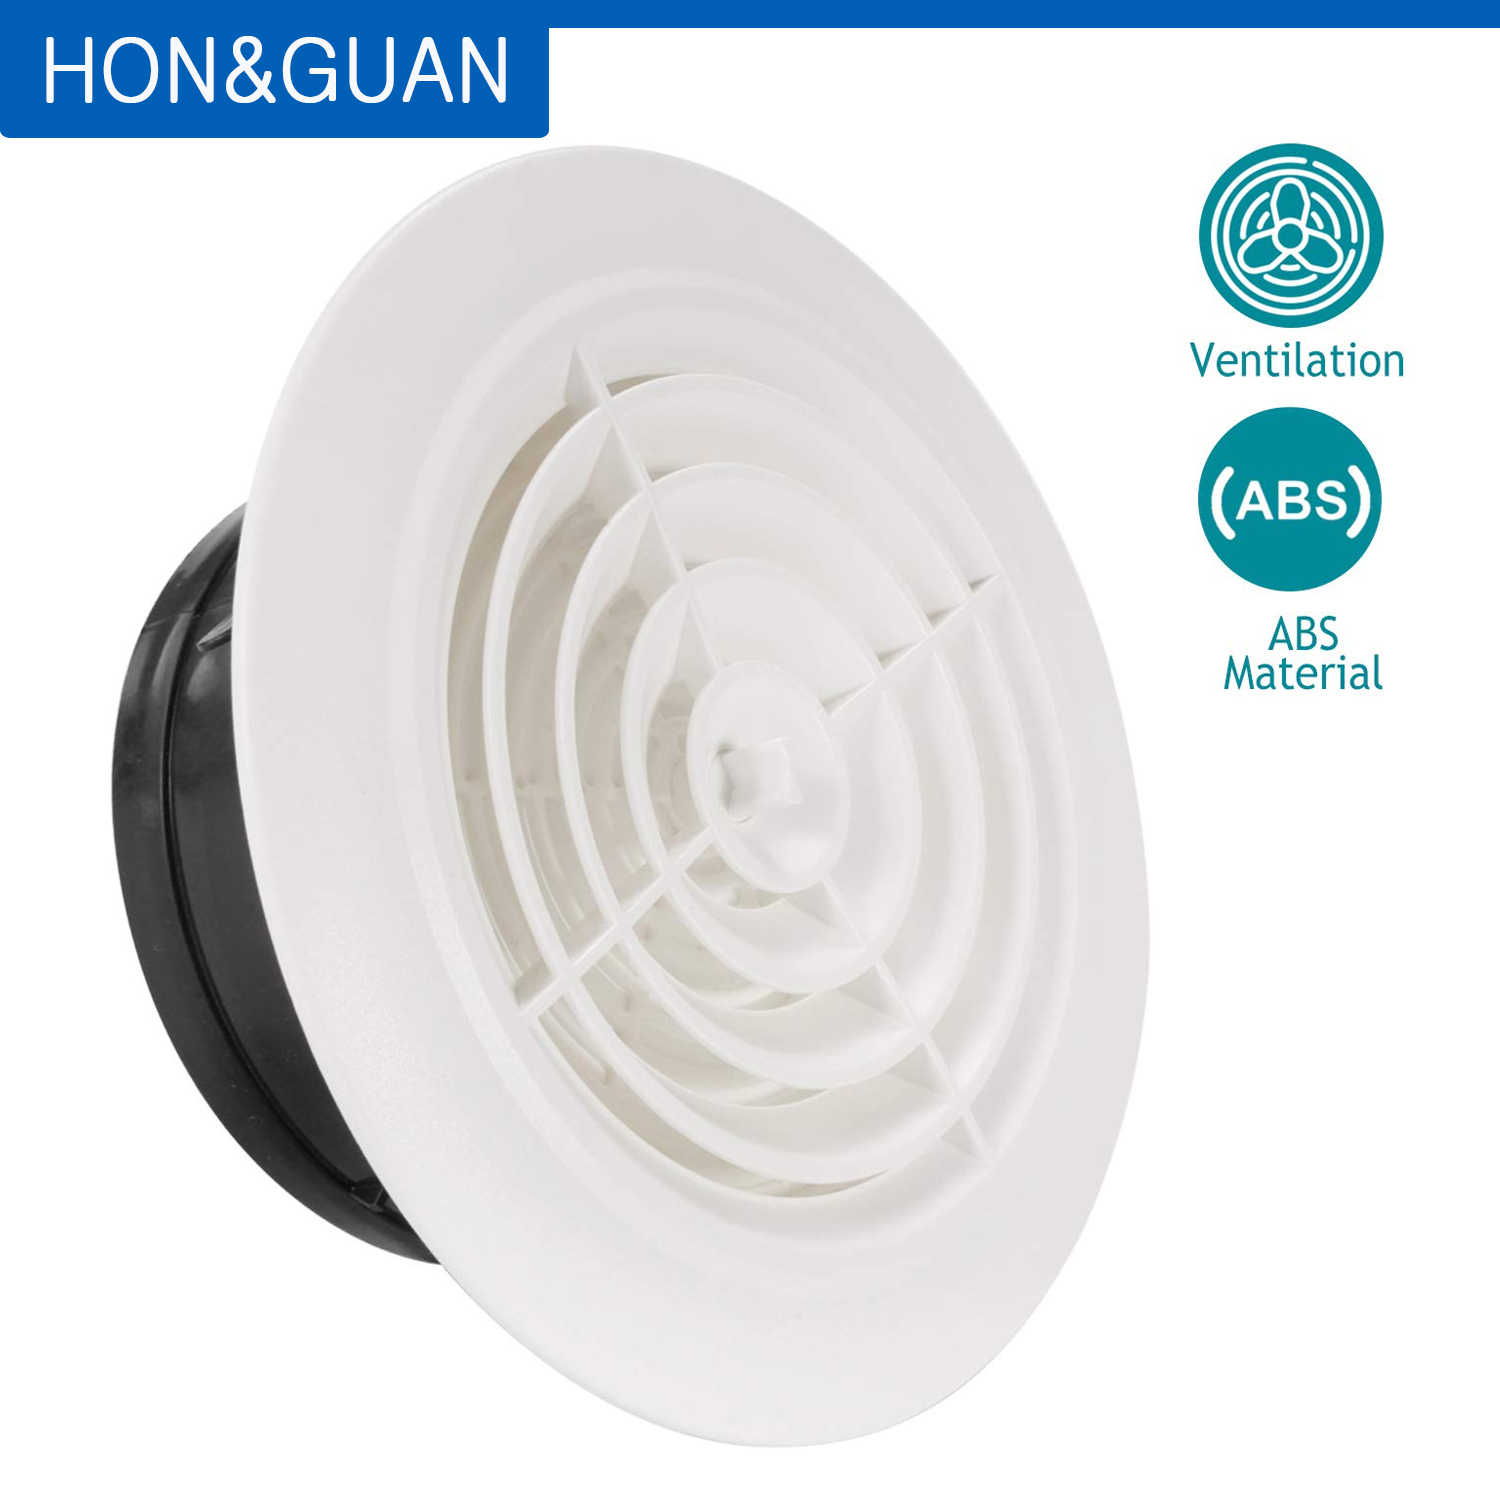 3 8 round plastic grill louver adjustable grille cover wall window ceiling ventilation outlet for bathroom kitchen exhaust vent